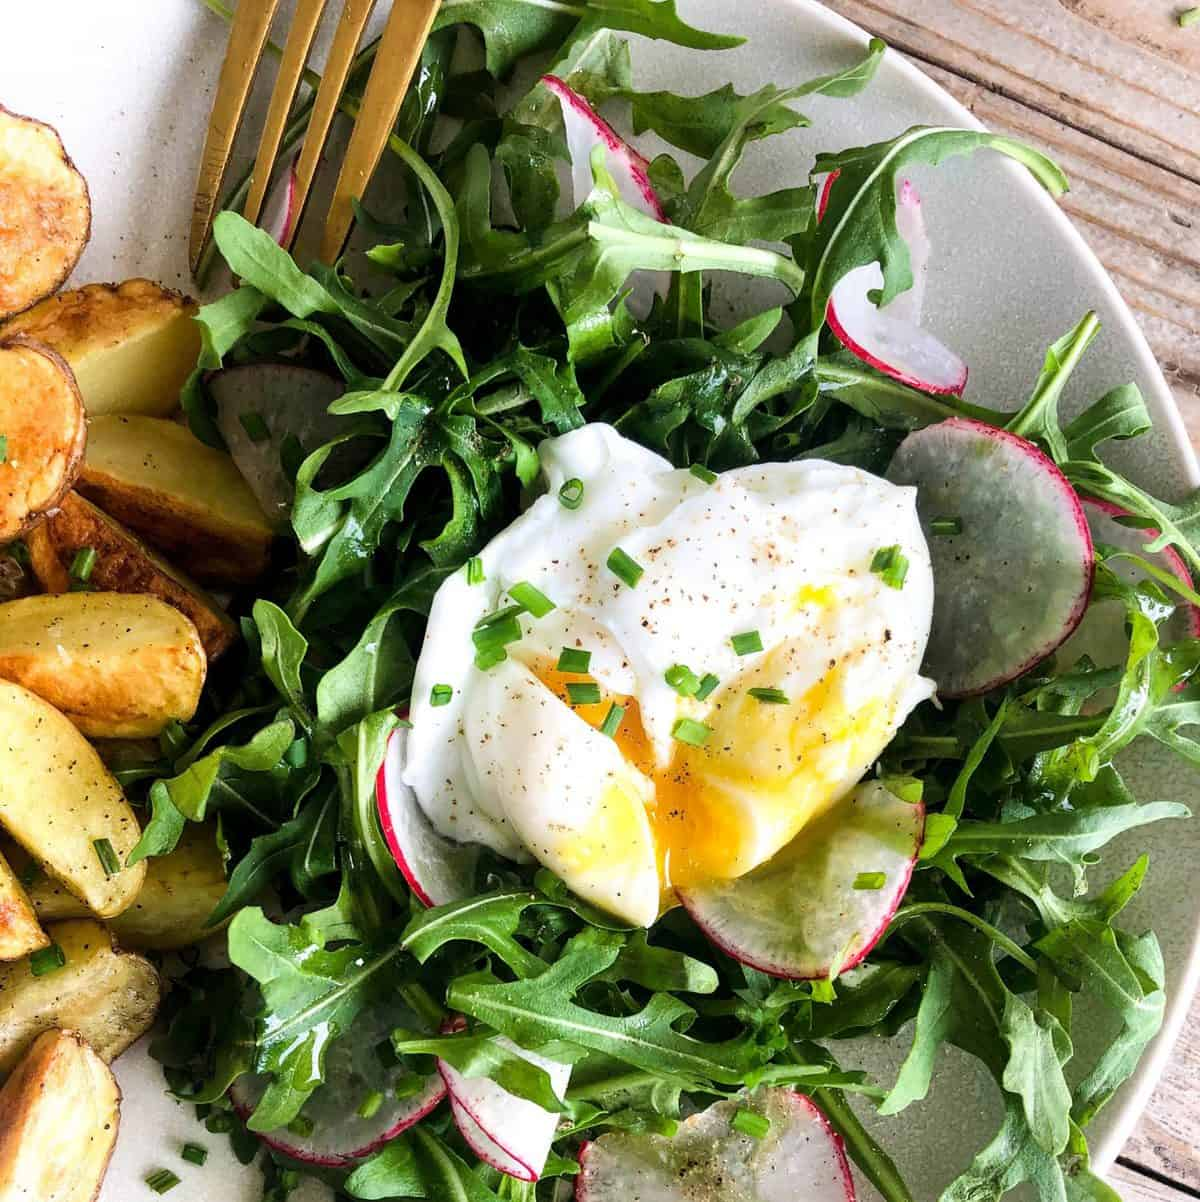 California Leafy greens - Arugula Salad with poached egg